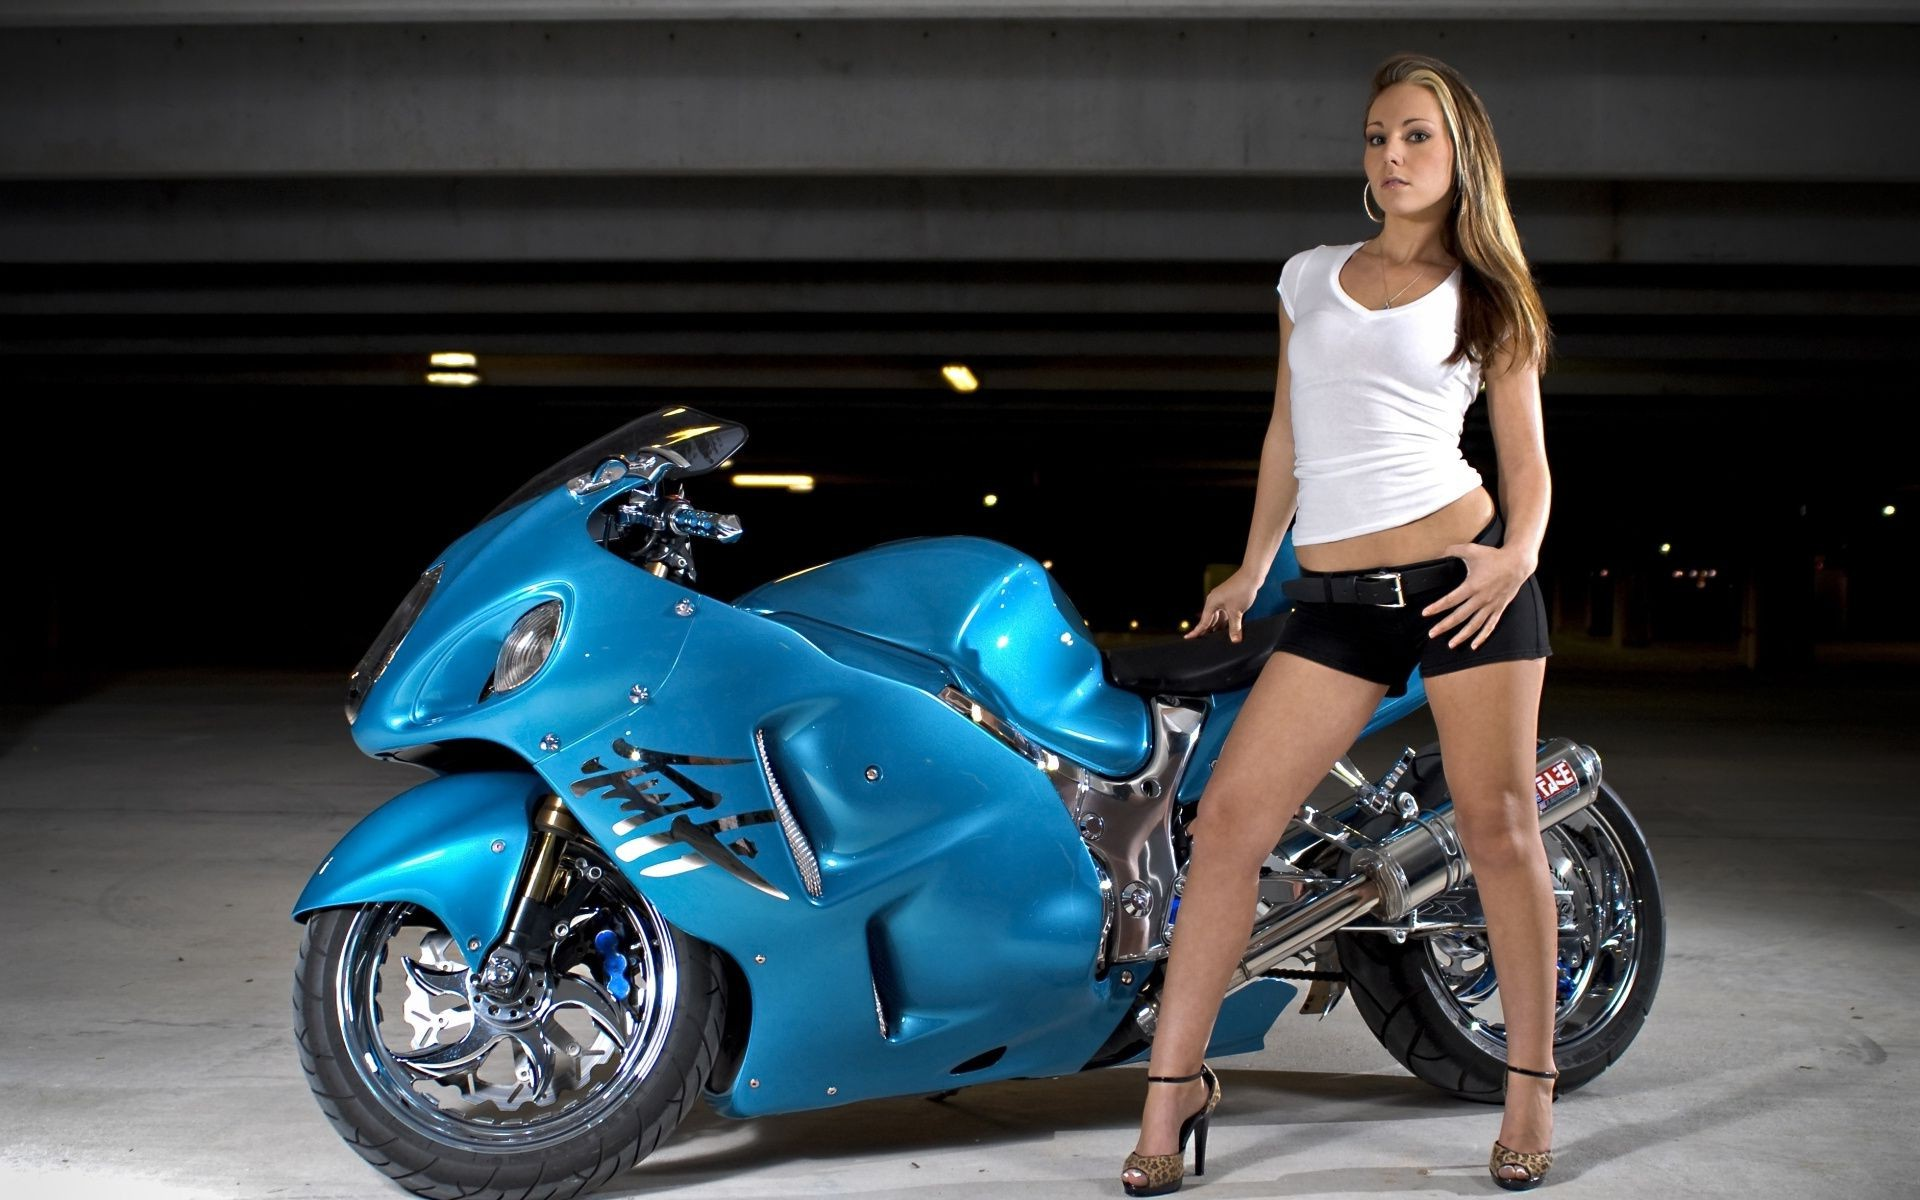 motorcycle stories.sports wind speed images Wallpaper